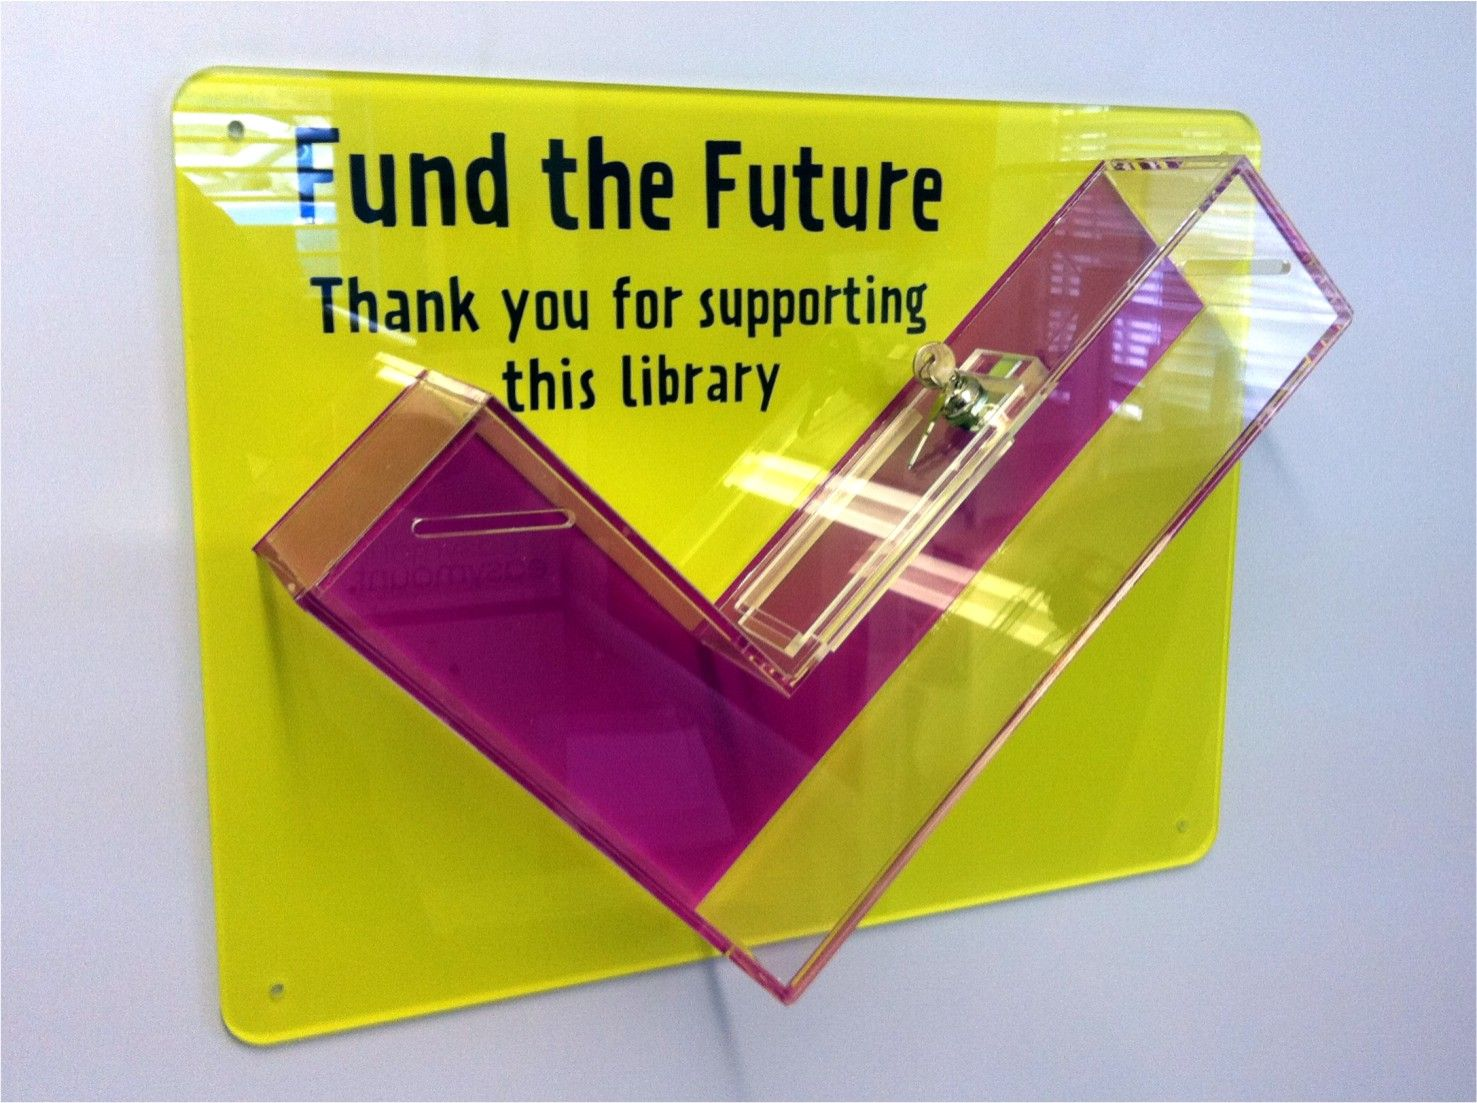 A creative example of a donation box, but will it raise any money?